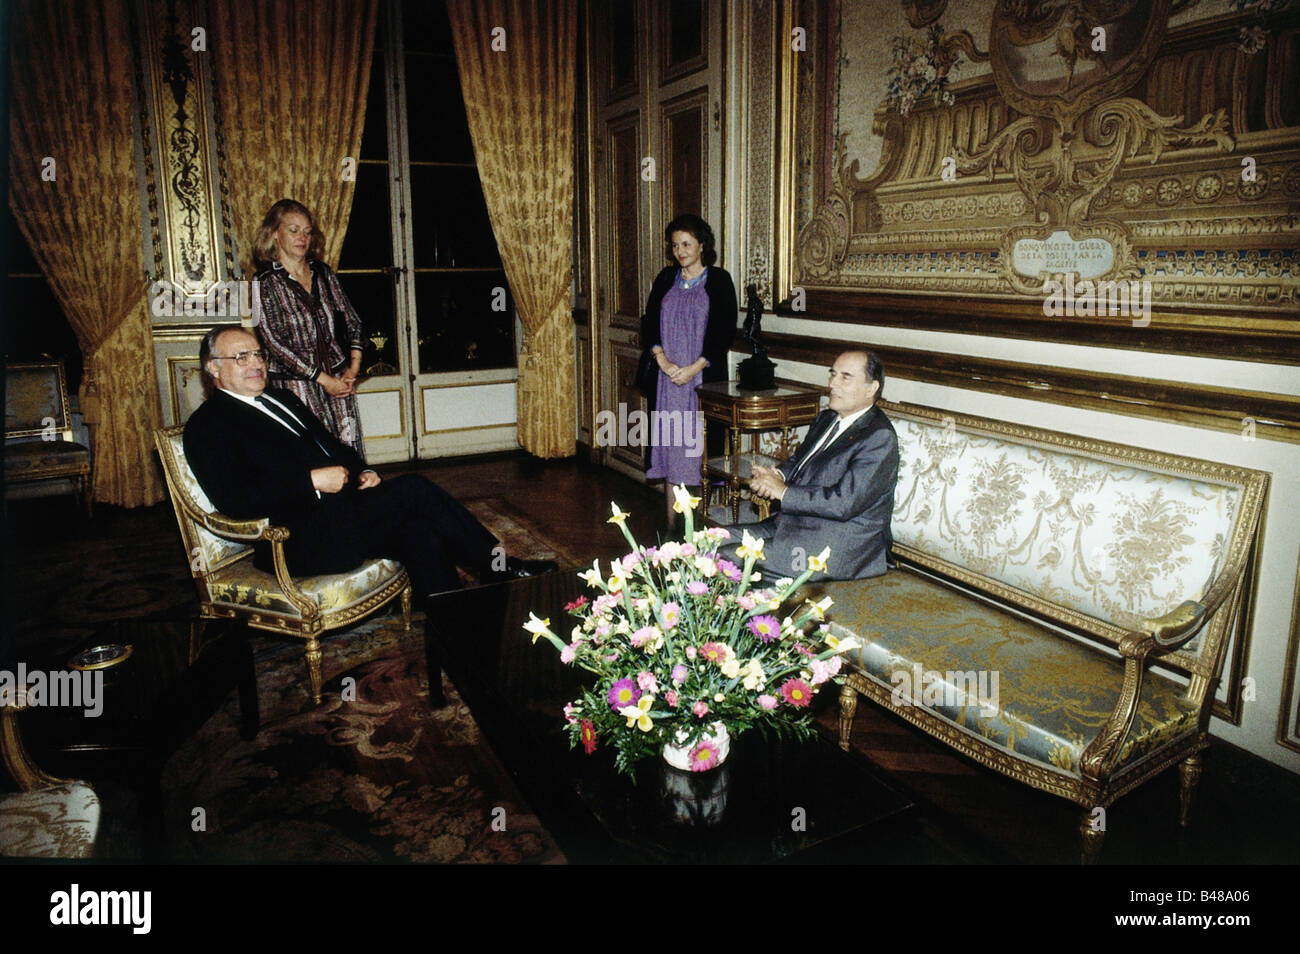 Kohl, Helmut, * 3.4.1930, German politician (CDU), chancellor of Germany 1982 - 1998, half length, with Francois - Stock Image